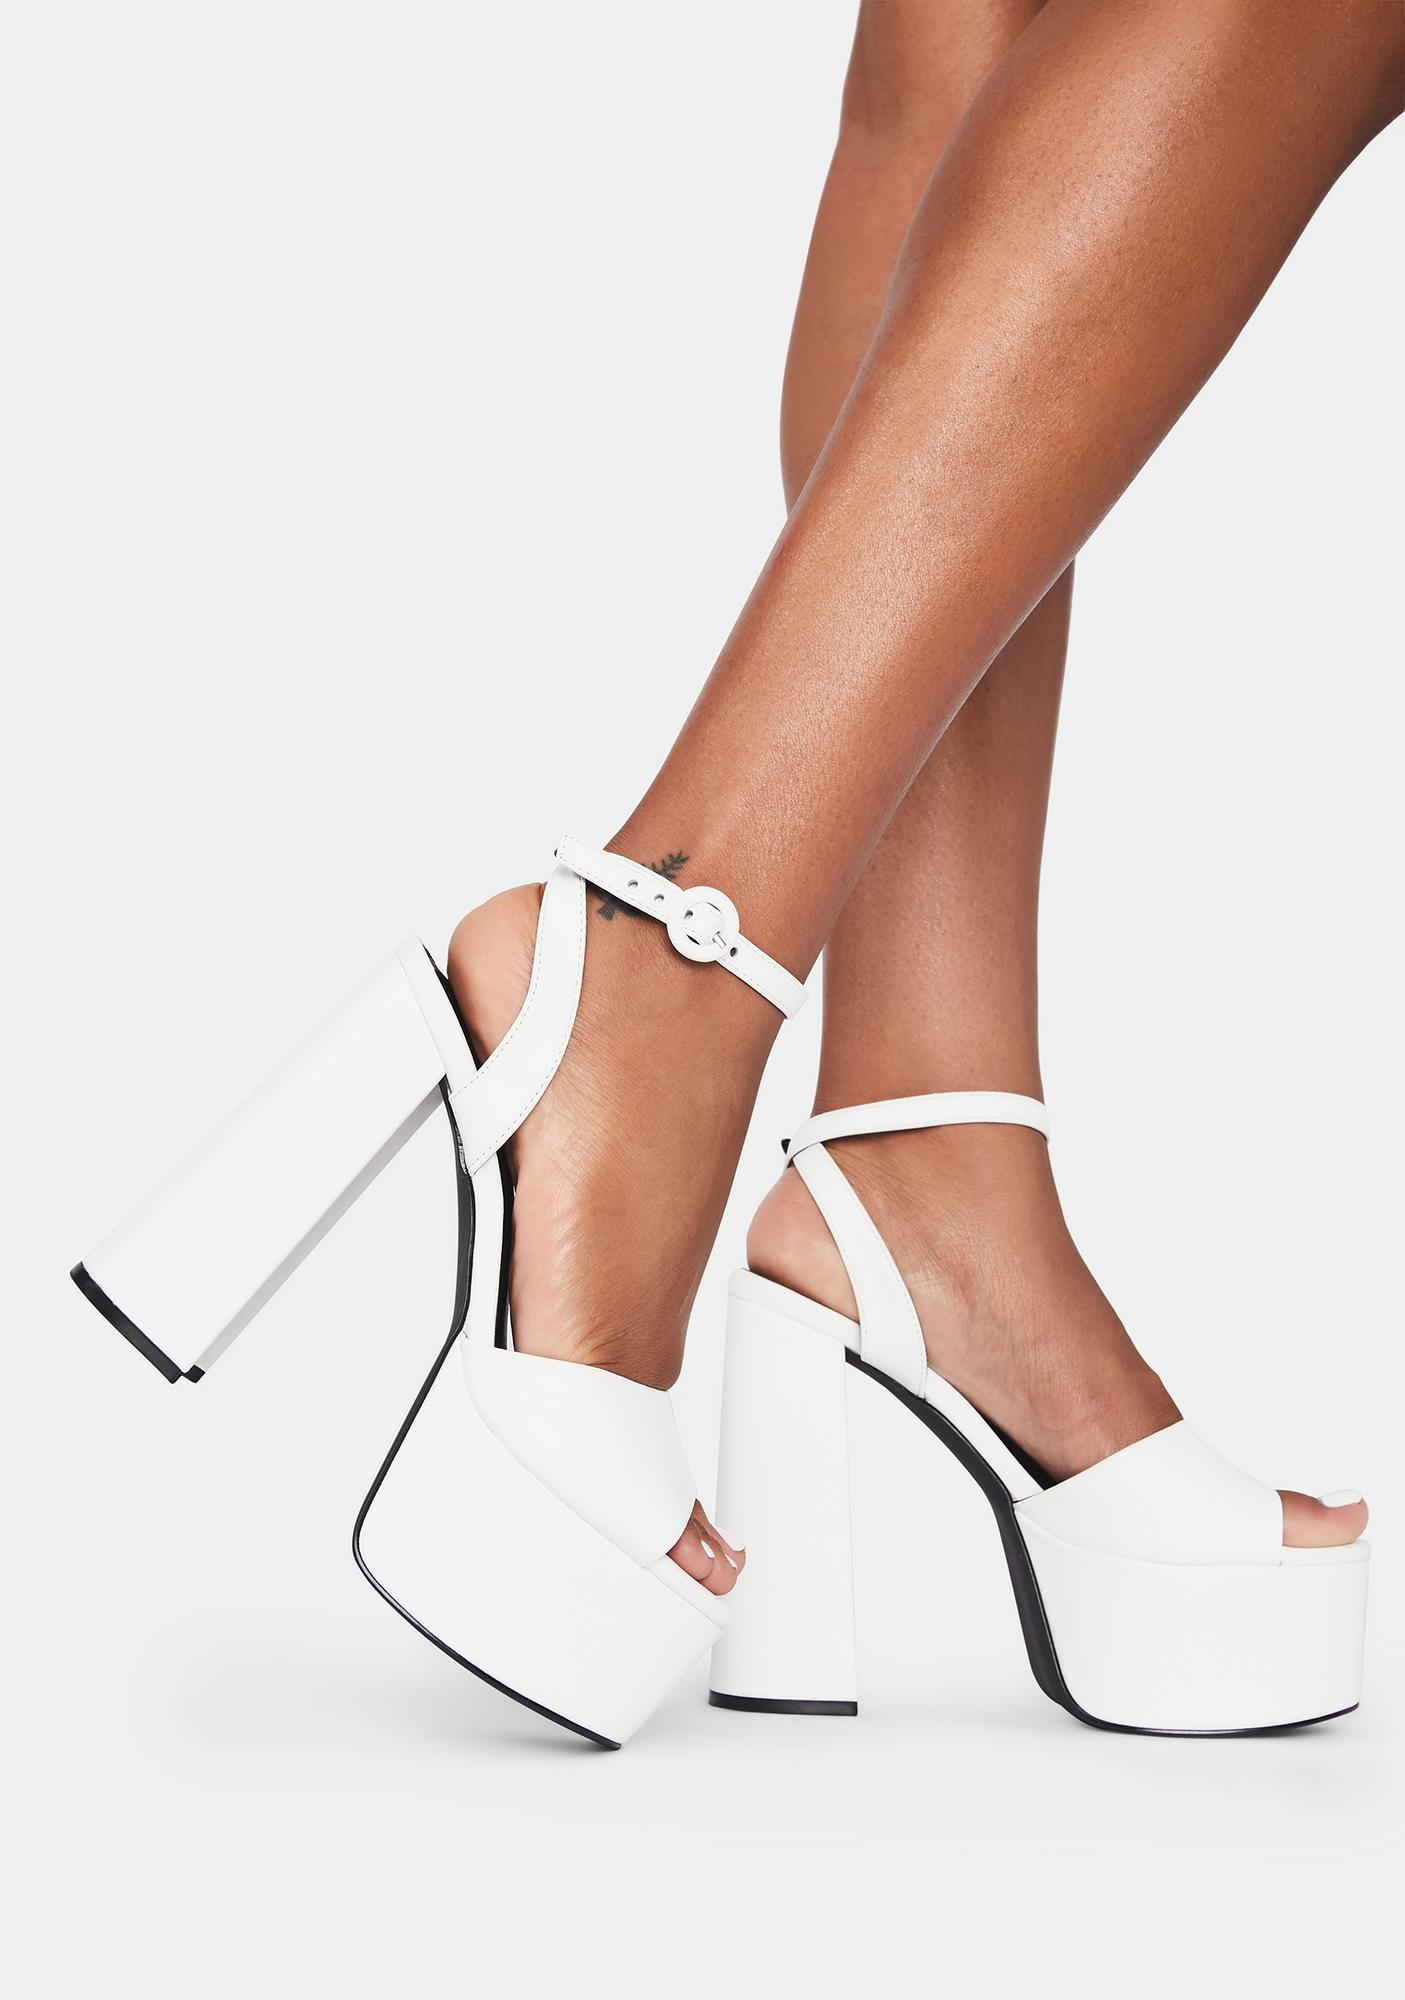 Ivory Space Angel Platform Heels